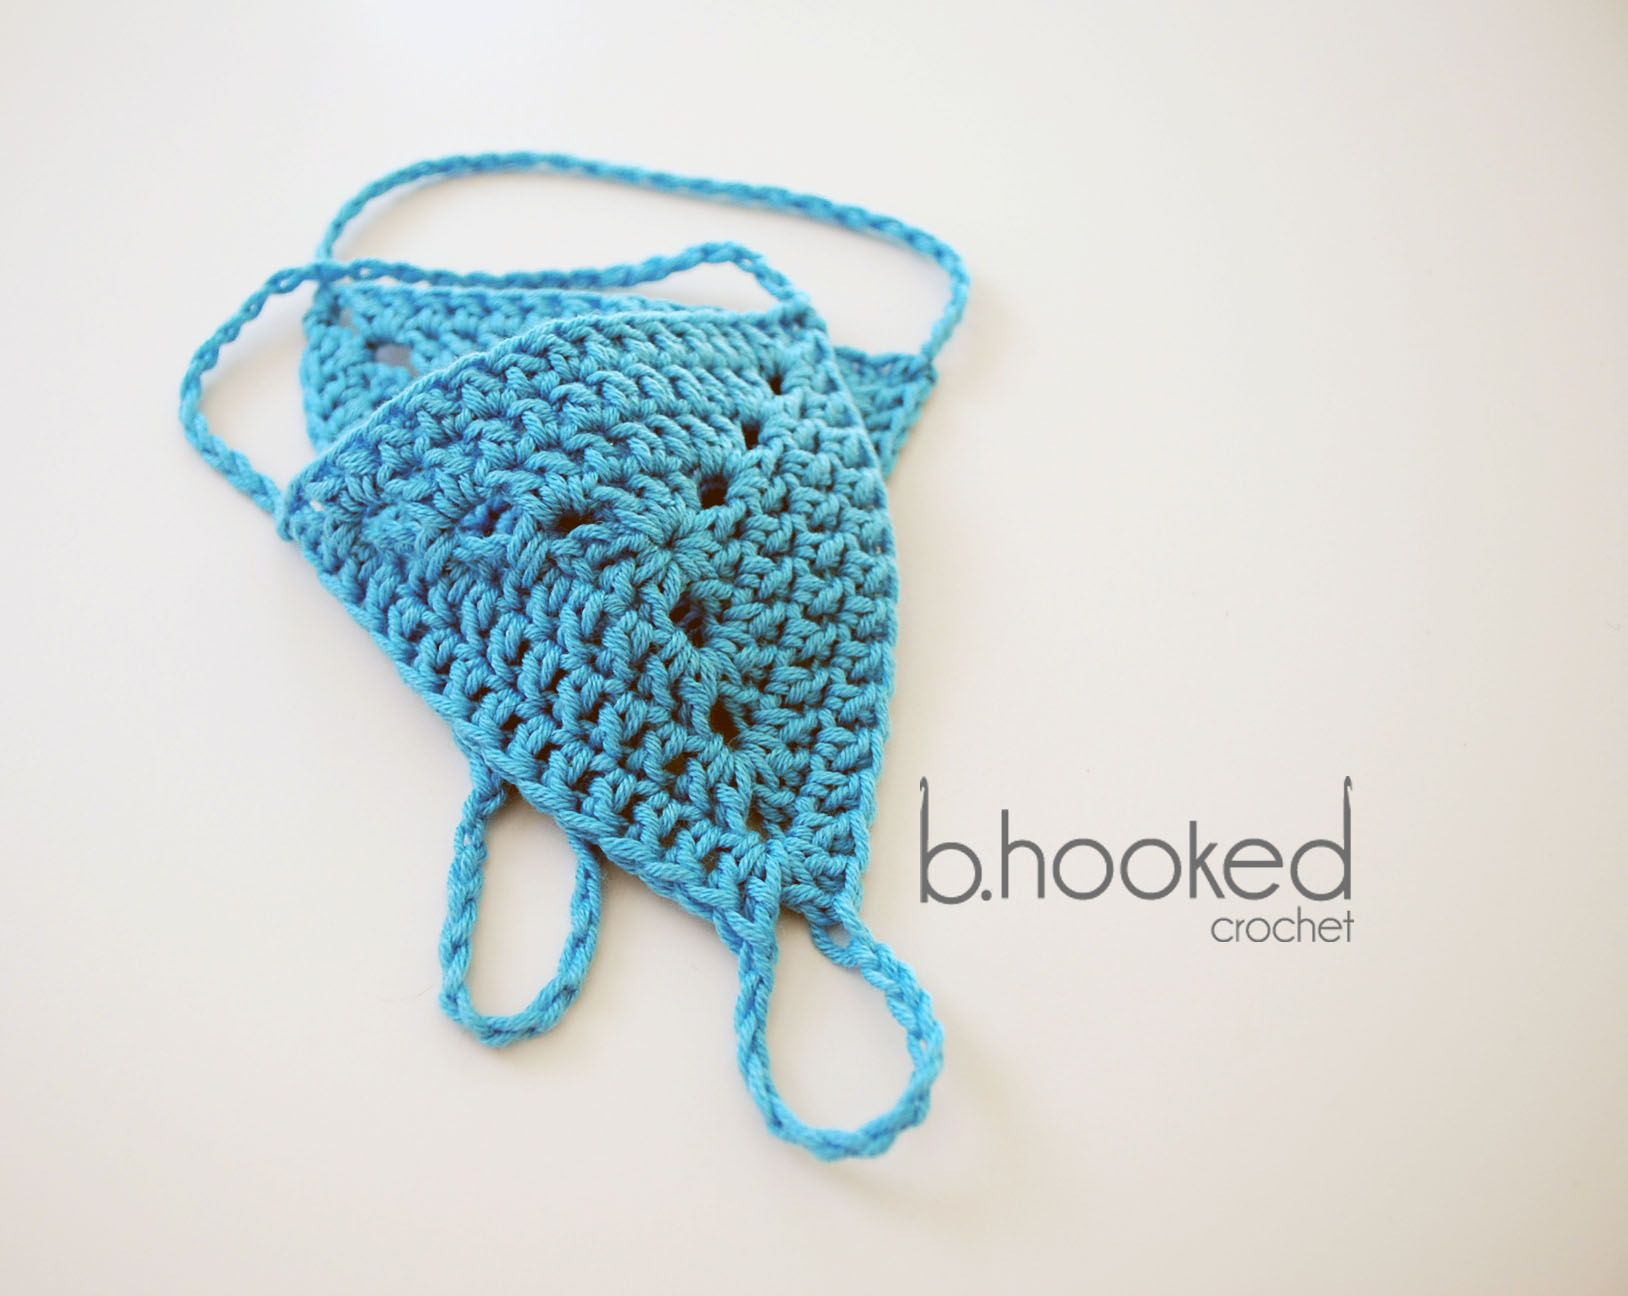 Free Pattern and video tutorial from B.hooked Crochet. d76f5509e69